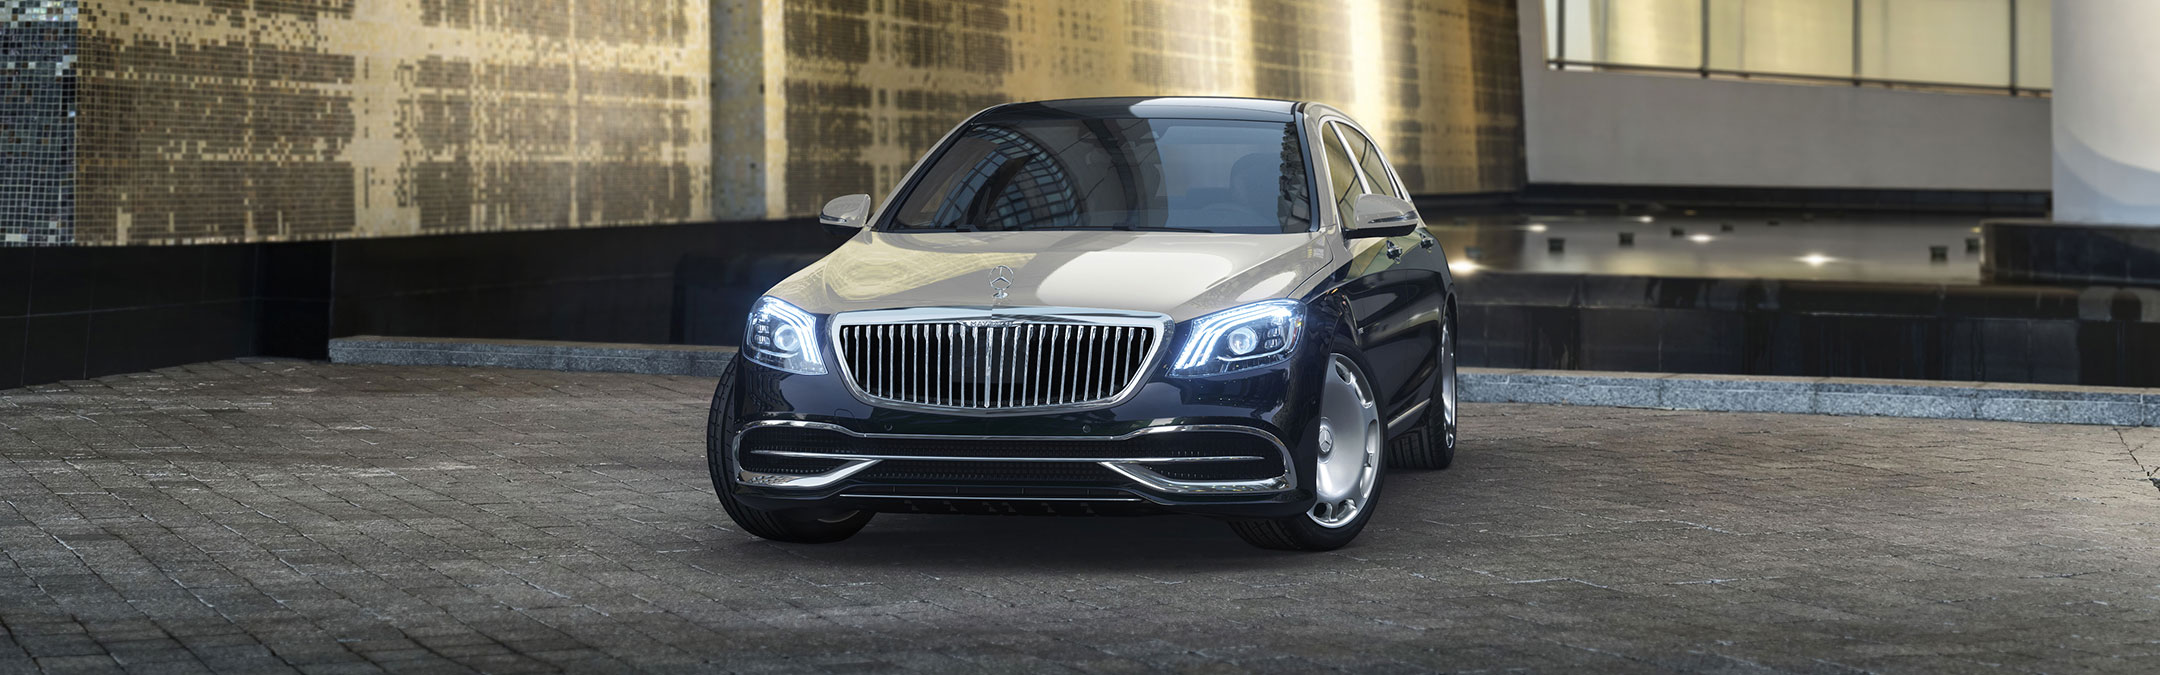 2019 Mercedes-Maybach Sedan front image